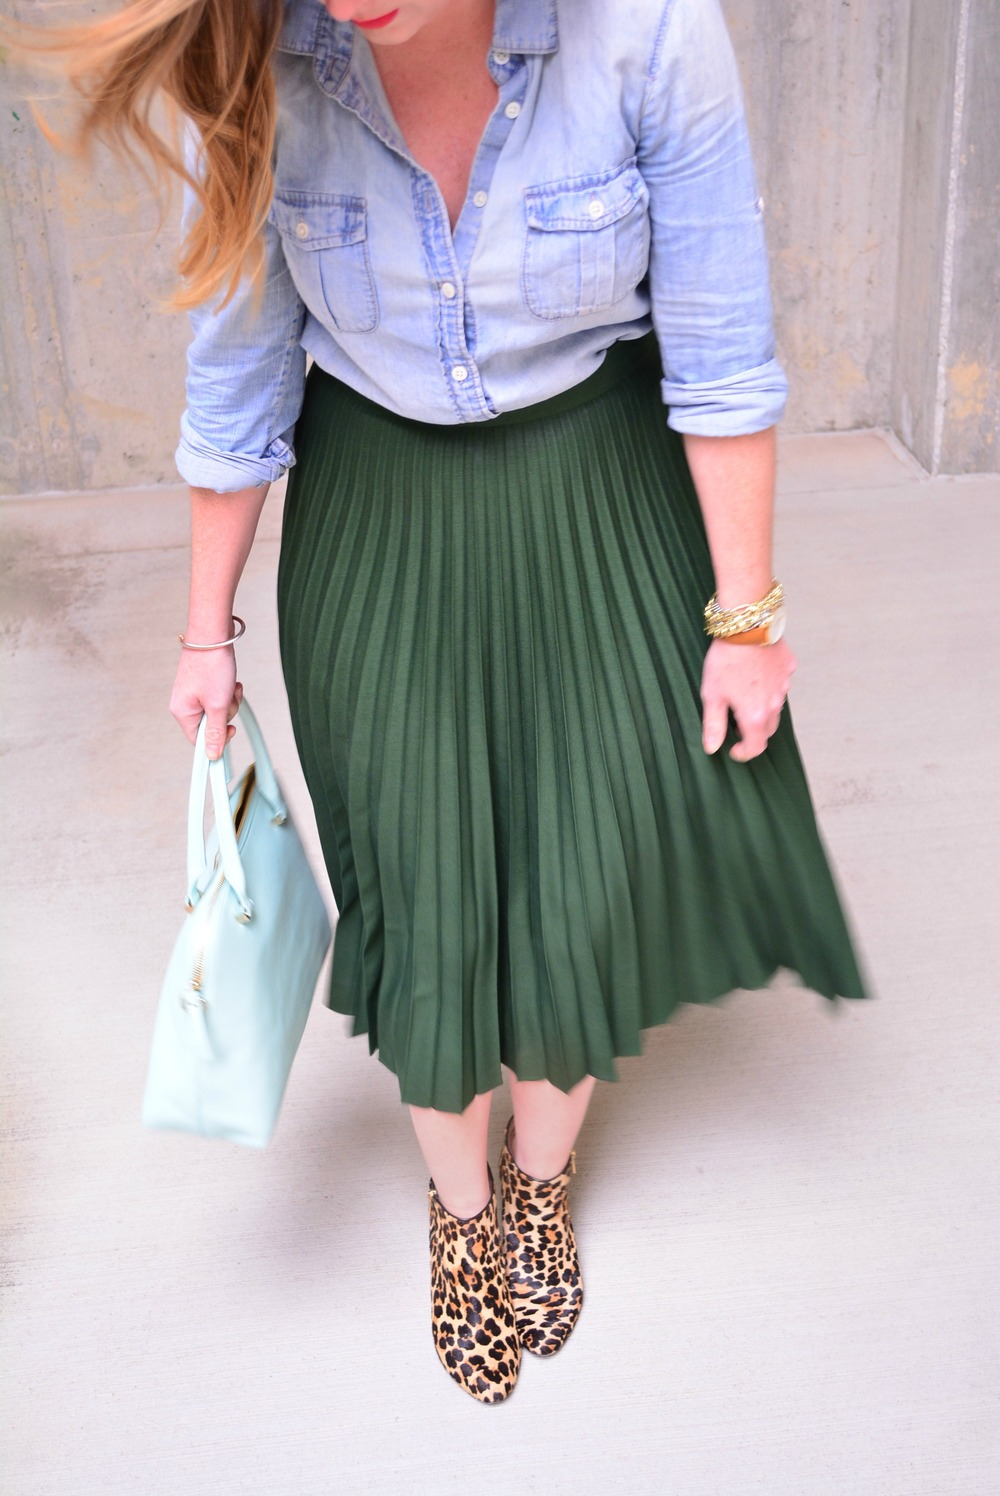 Chambray shirt with green maxi skirt